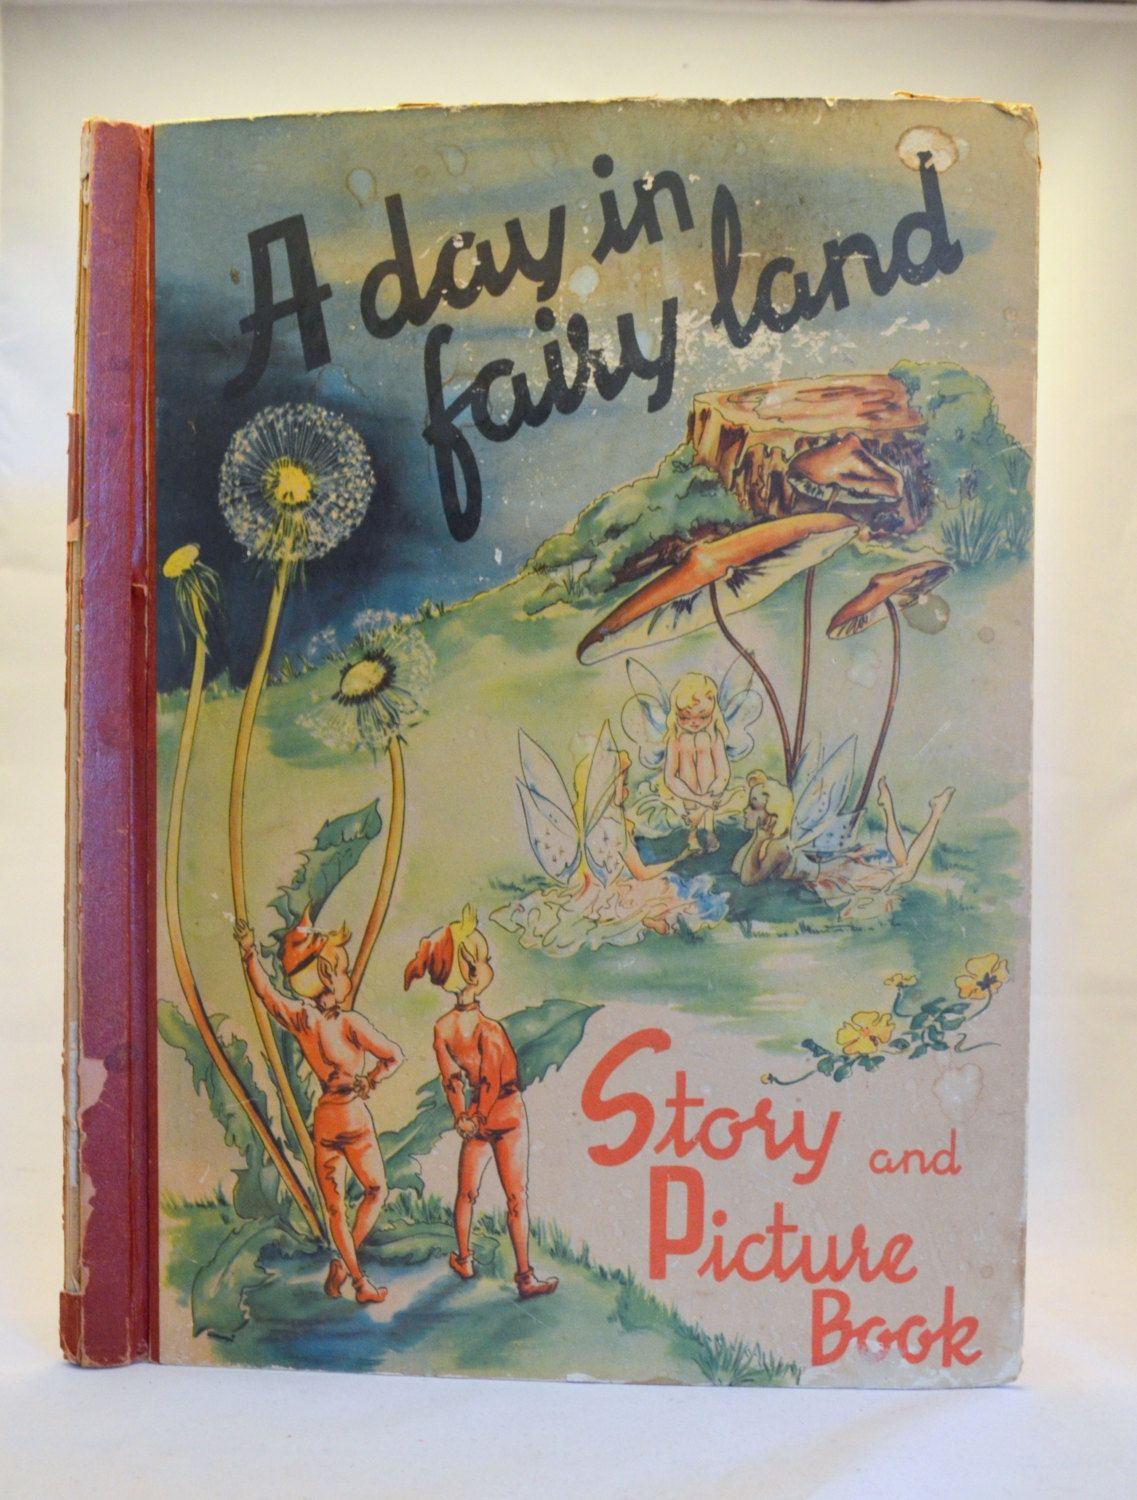 Vintage Oversized Book A Day In Fairy Land Story And Picture Ana Mae Seagren Sigrid Rahmas 1940s By UpswingVintage On Etsy